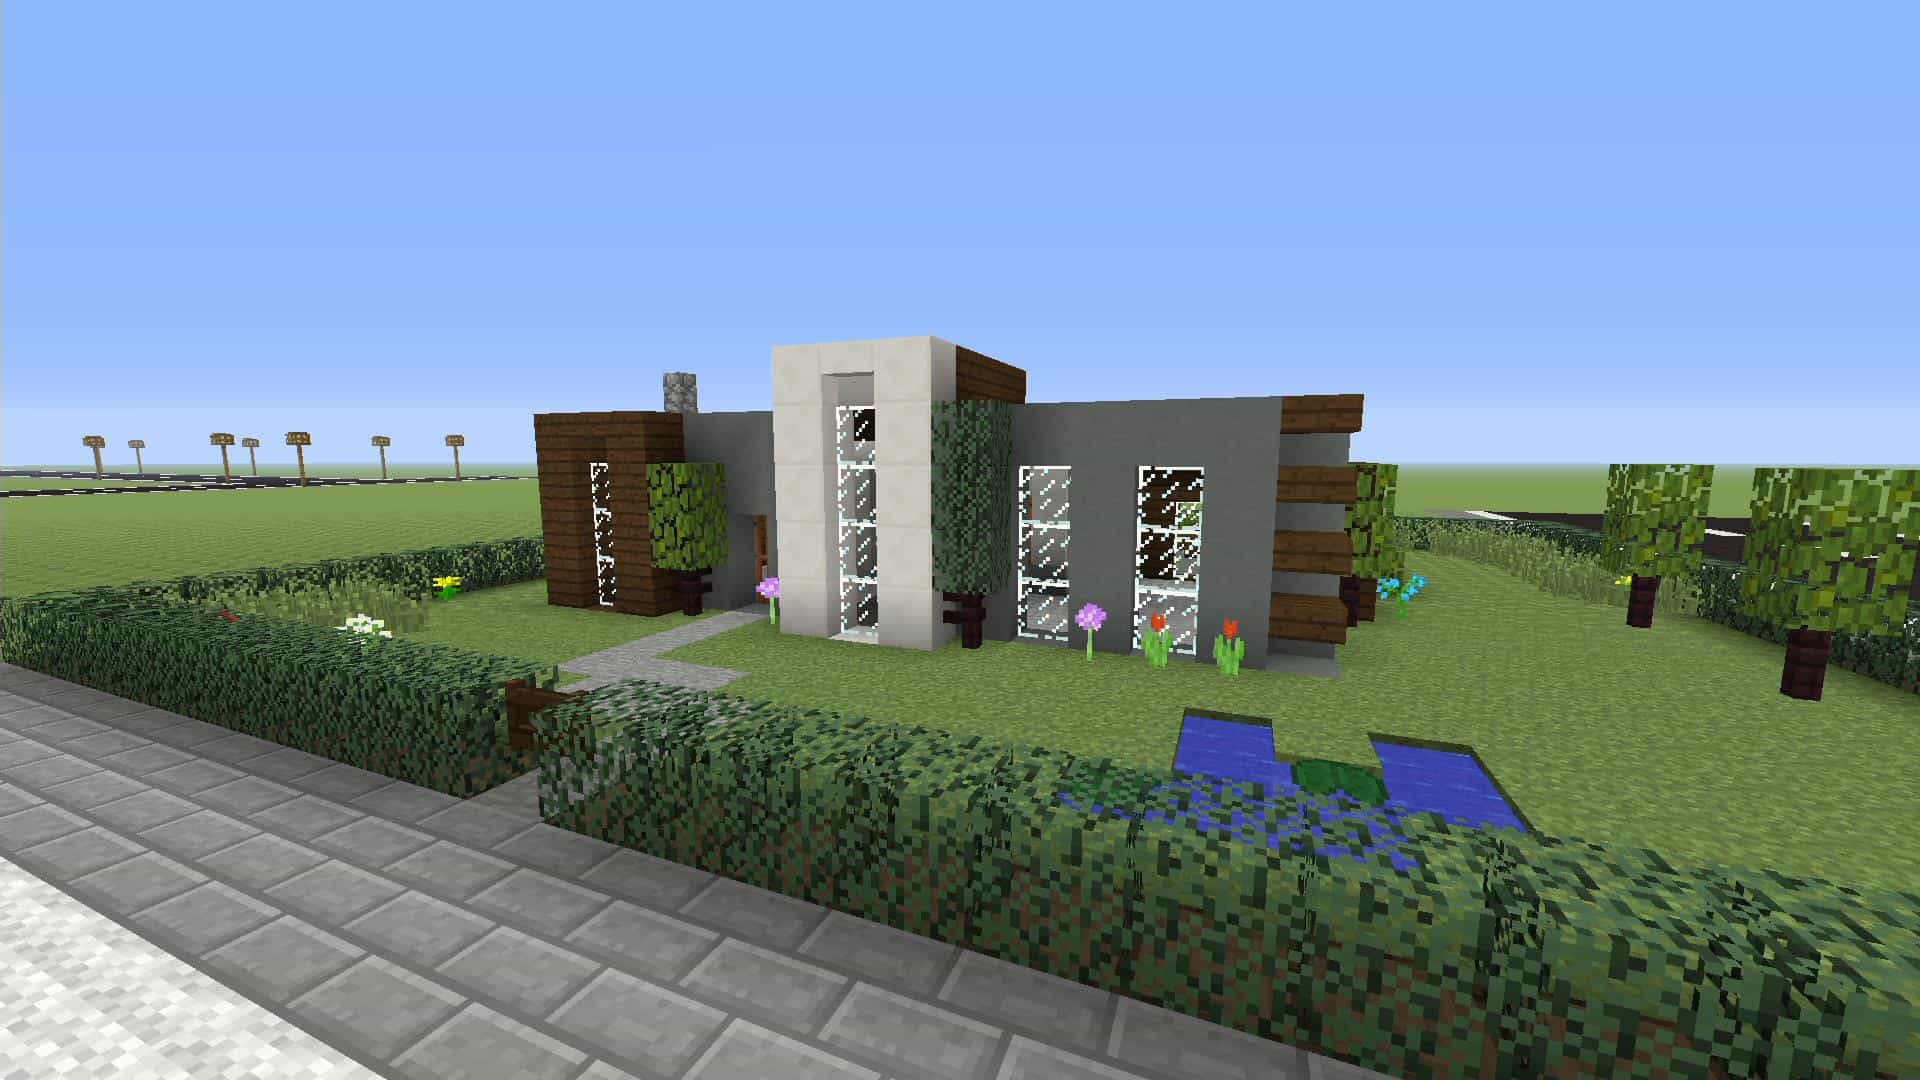 Minecraft: How to make a Simple Modern House